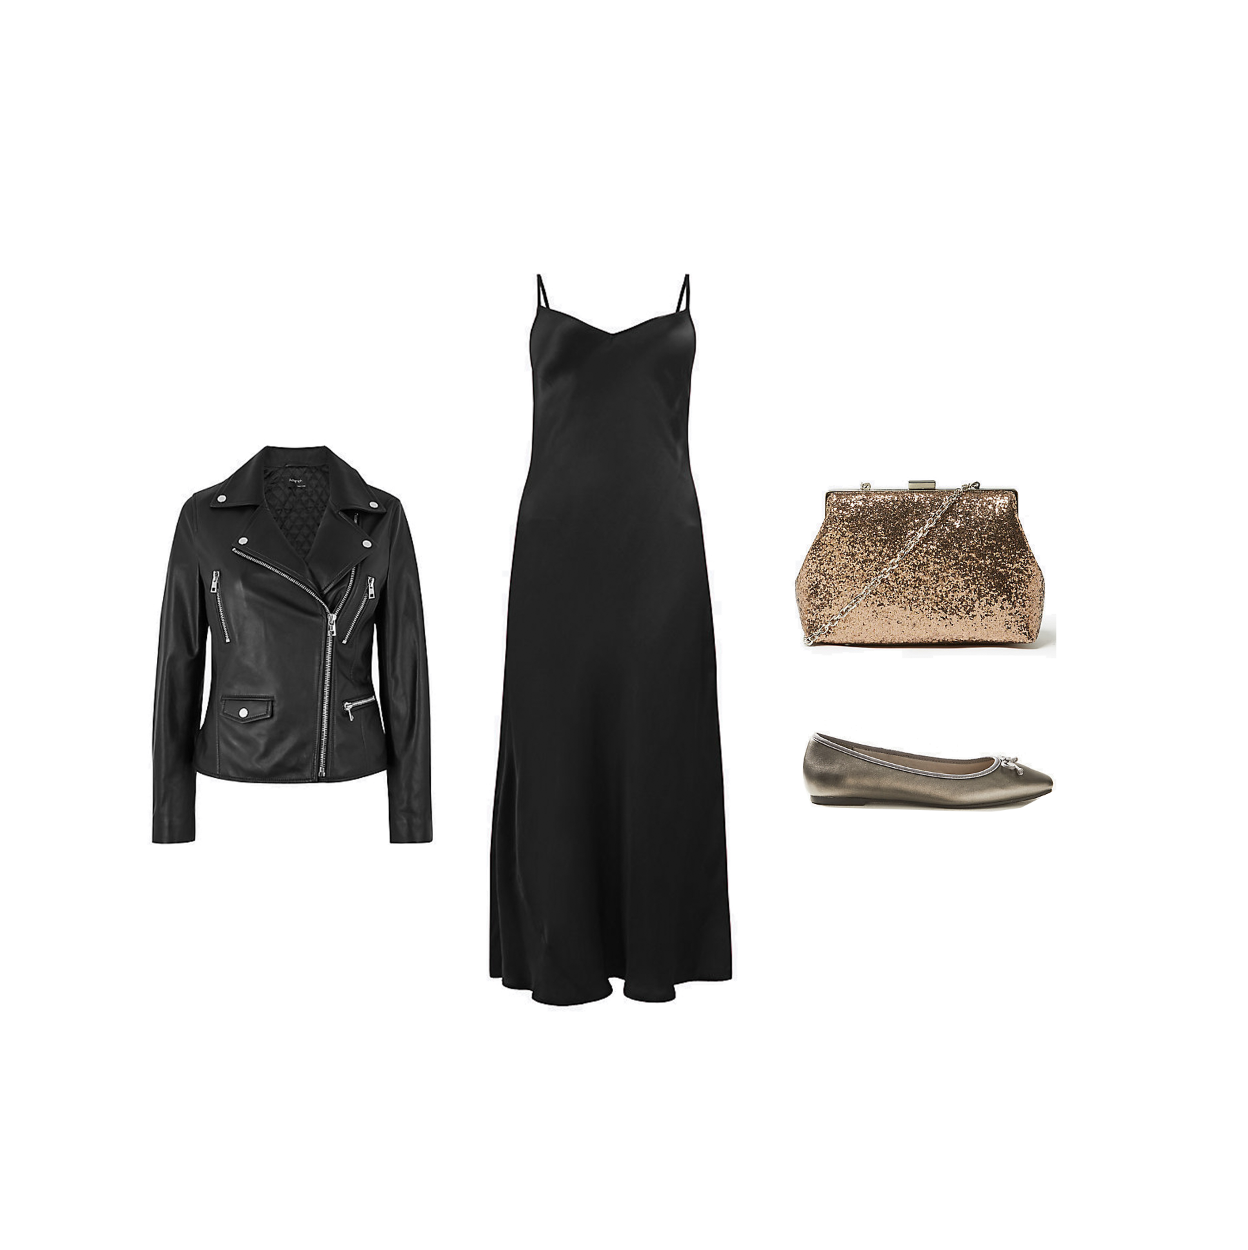 my midlife fashion, marks and Spencer party wear, party wear, marks and Spencer leather biker jacket, marks and Spencer silky slip midi dress, marks and Spencer glitter chain strap shoulder bag, marks and Spencer bow ballerina pumps